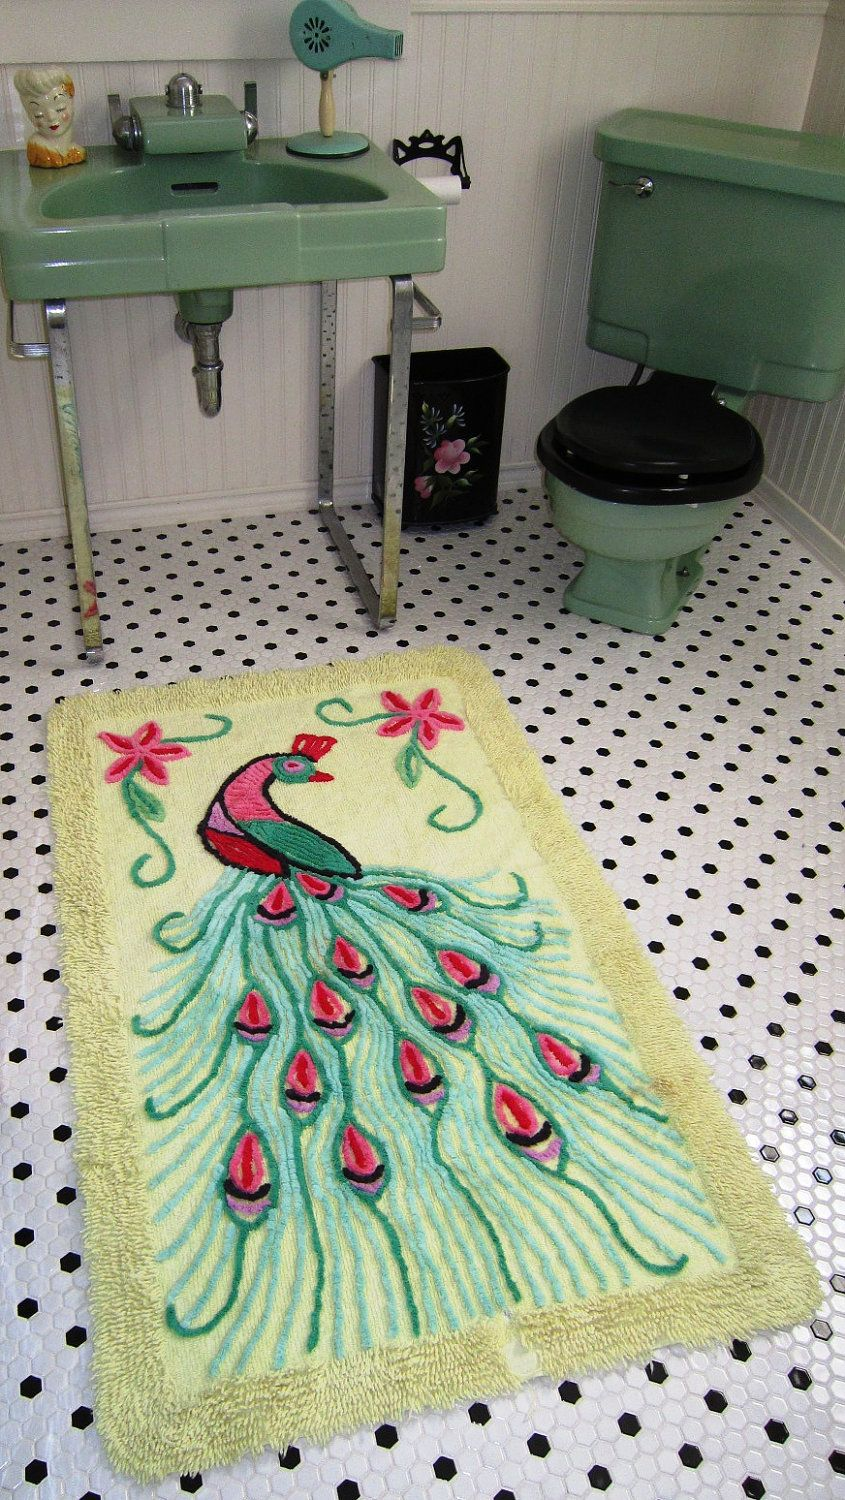 Art Deco Vintage 1940s Peacock Chenille Throw Rug Bath Mat